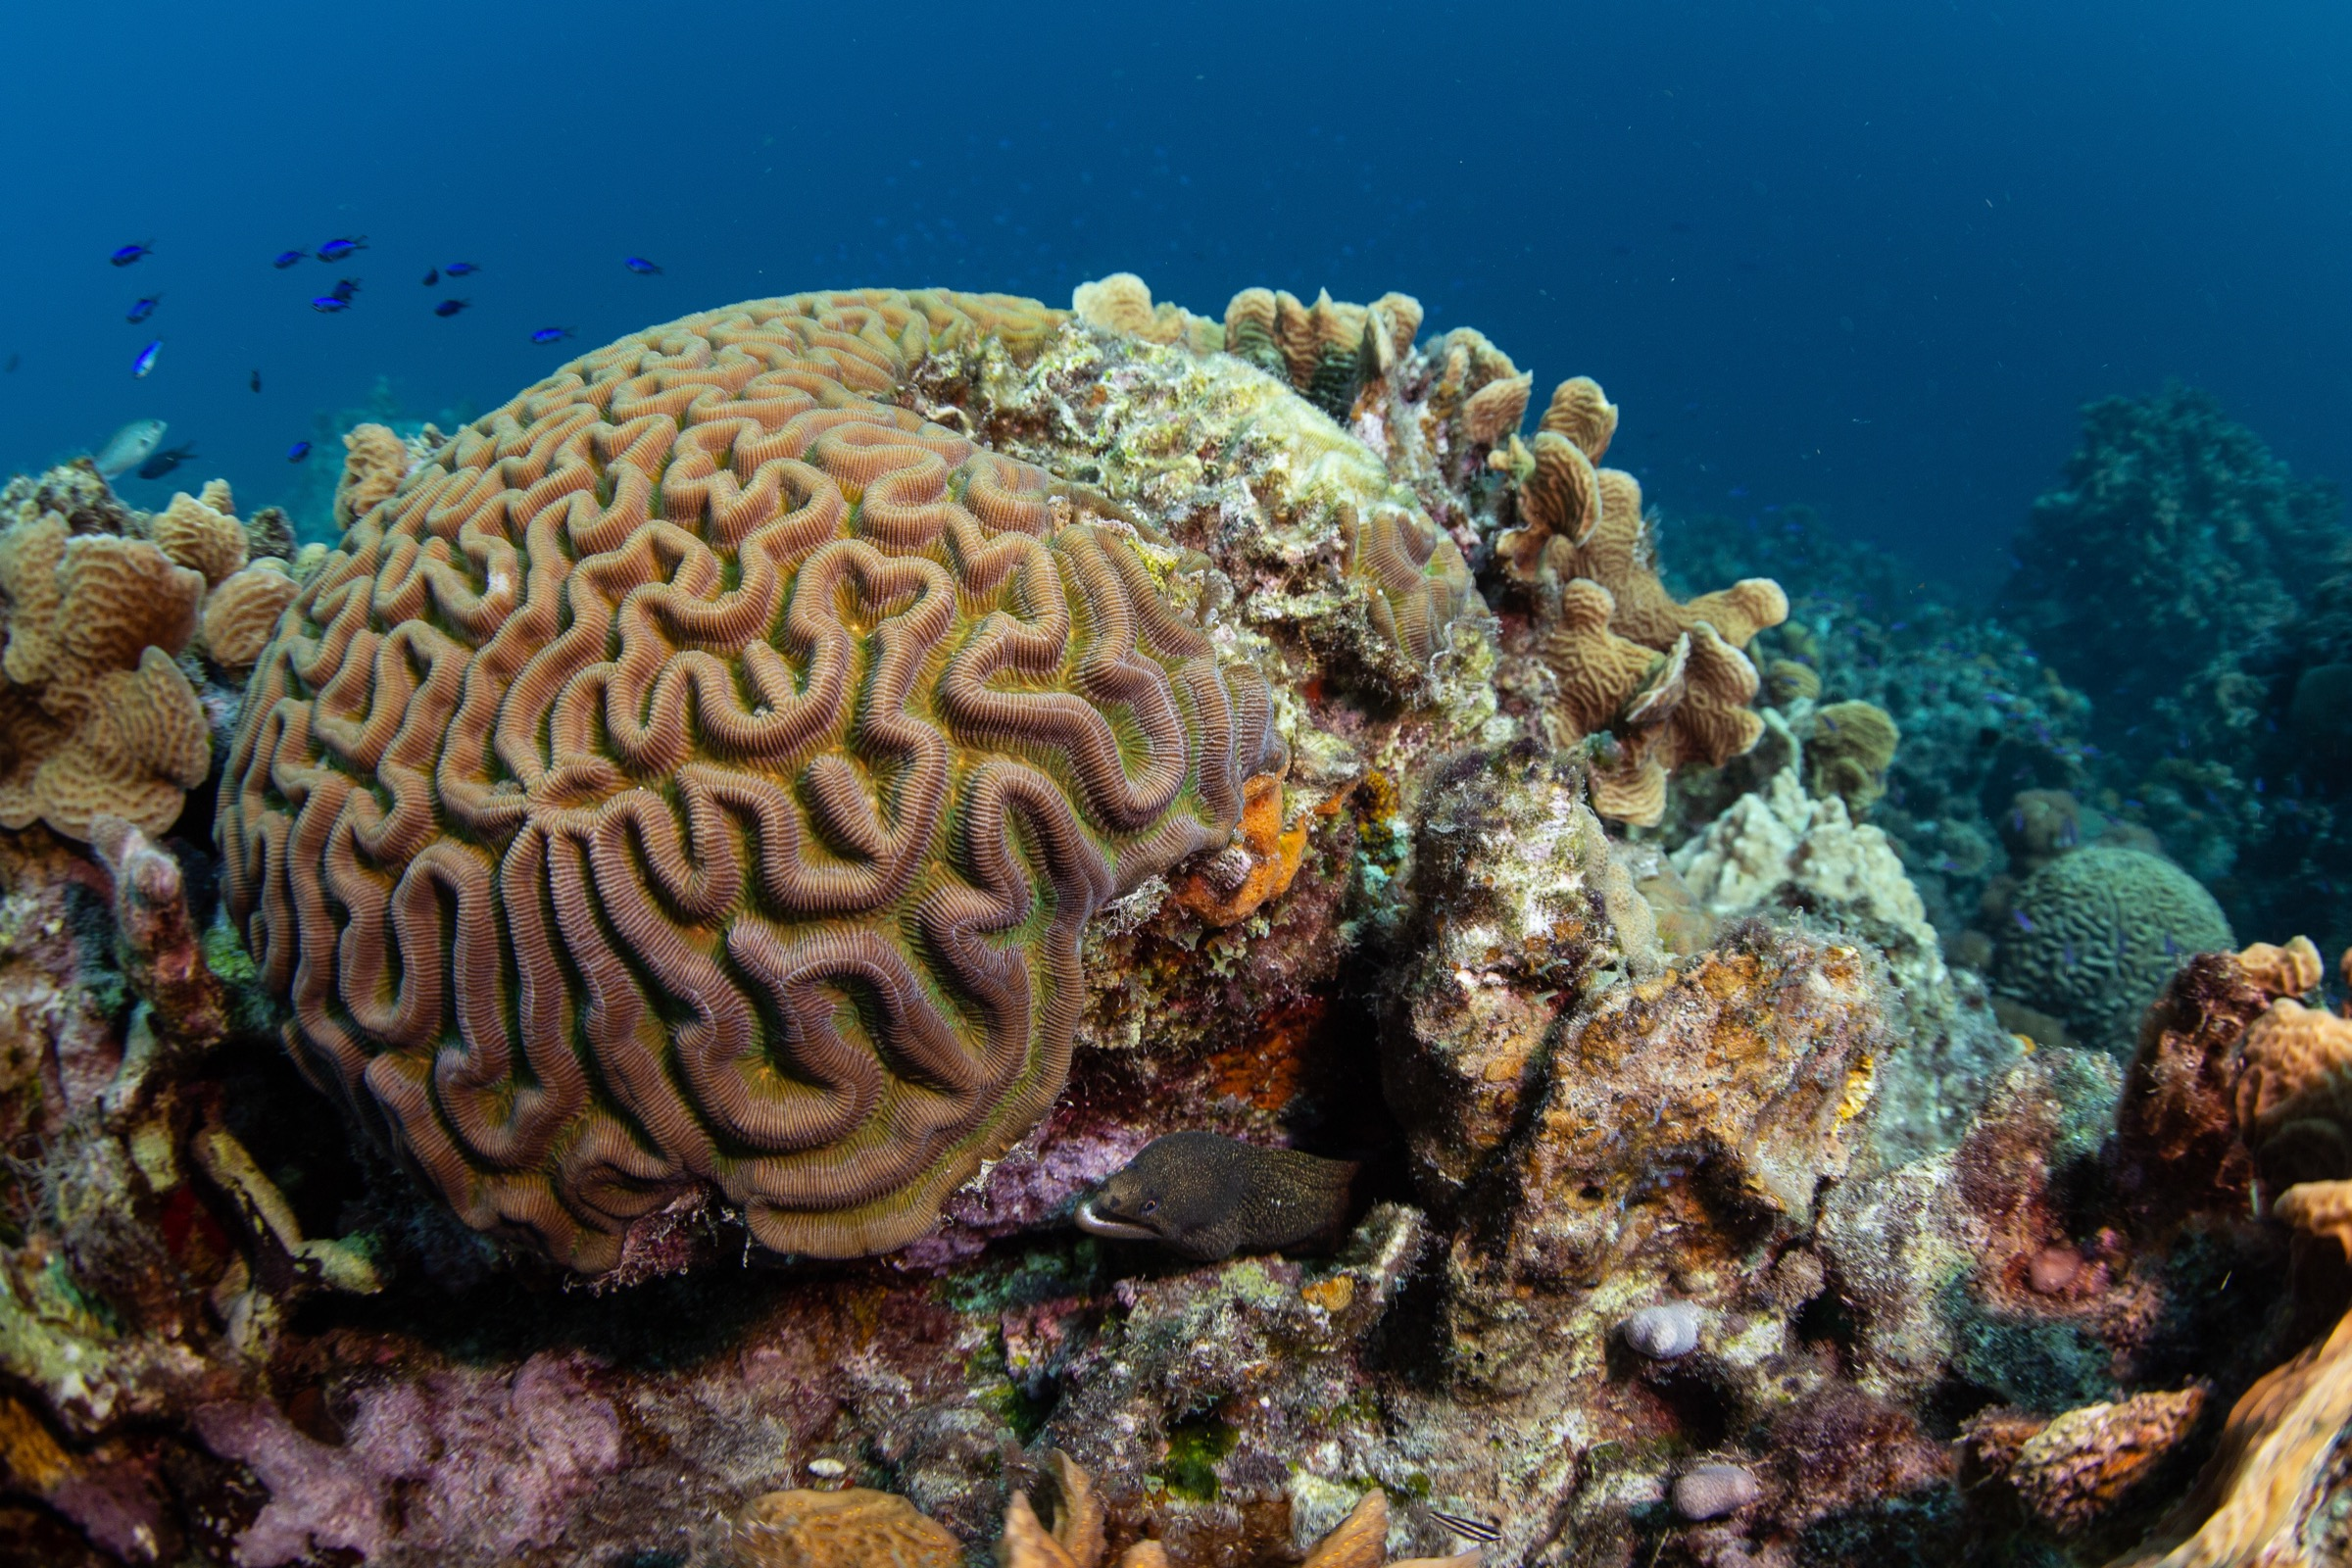 A colony of the boulder brain coral (<em>Colpophyllia natans</em>) off the coast of Curaçao